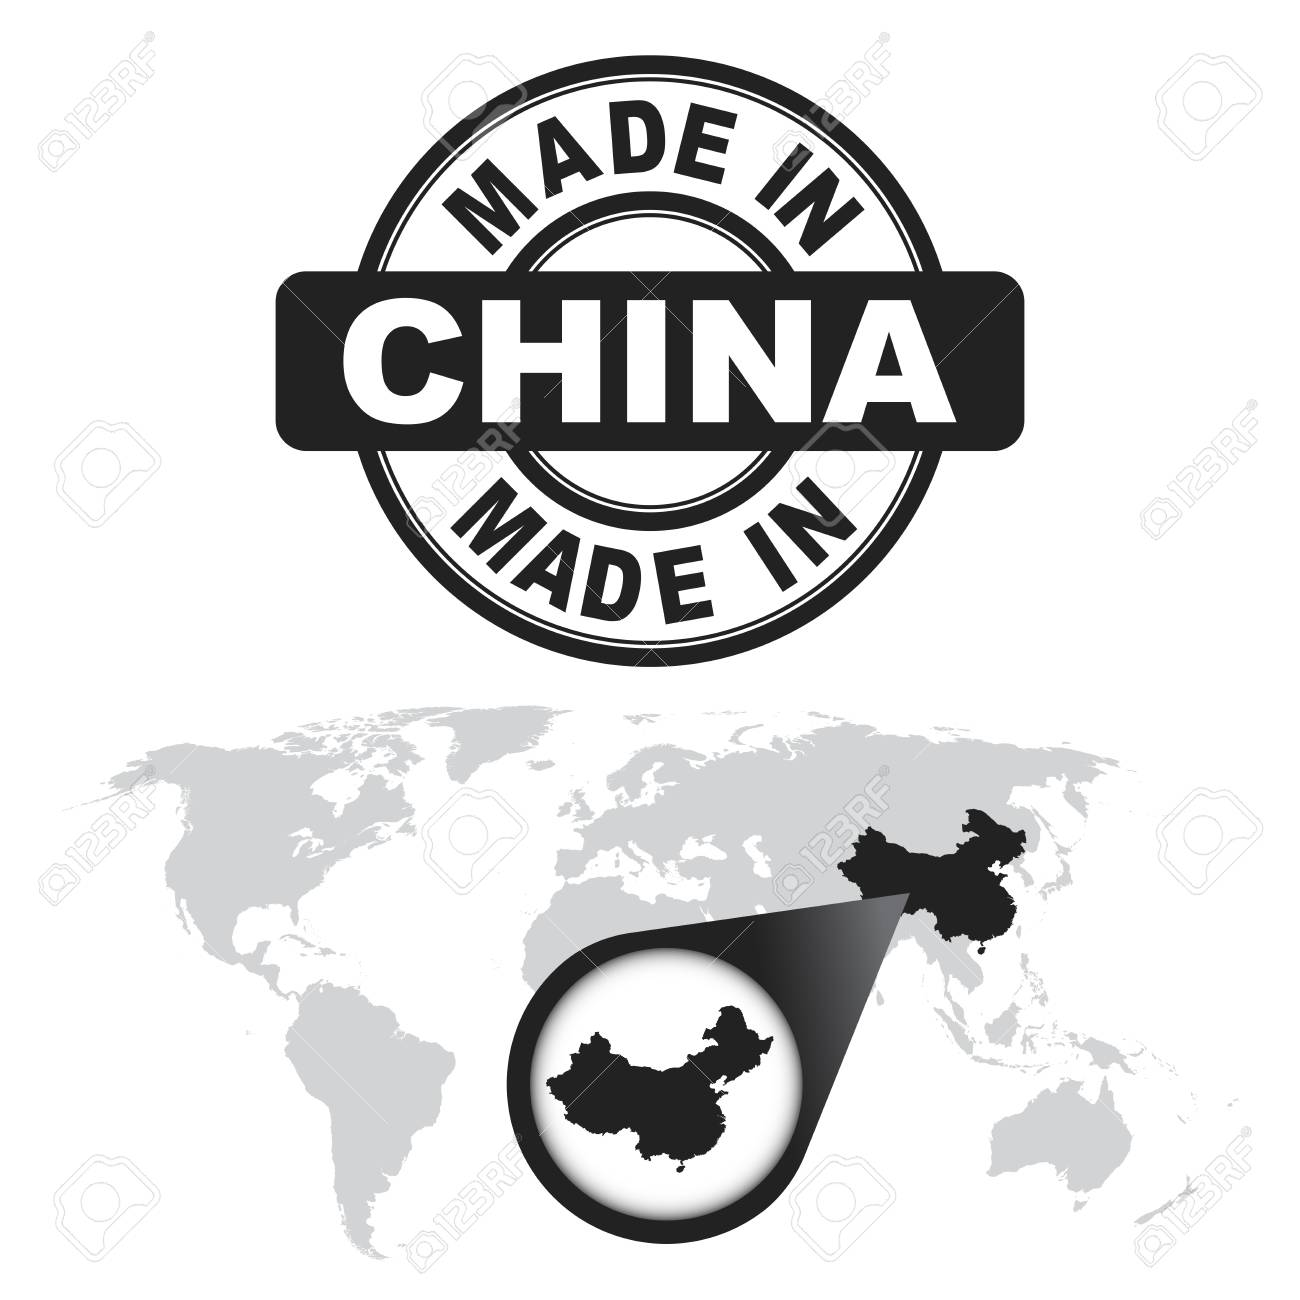 Made in china stamp world map with zoom on country royalty free made in china stamp world map with zoom on country stock vector 74892315 gumiabroncs Images